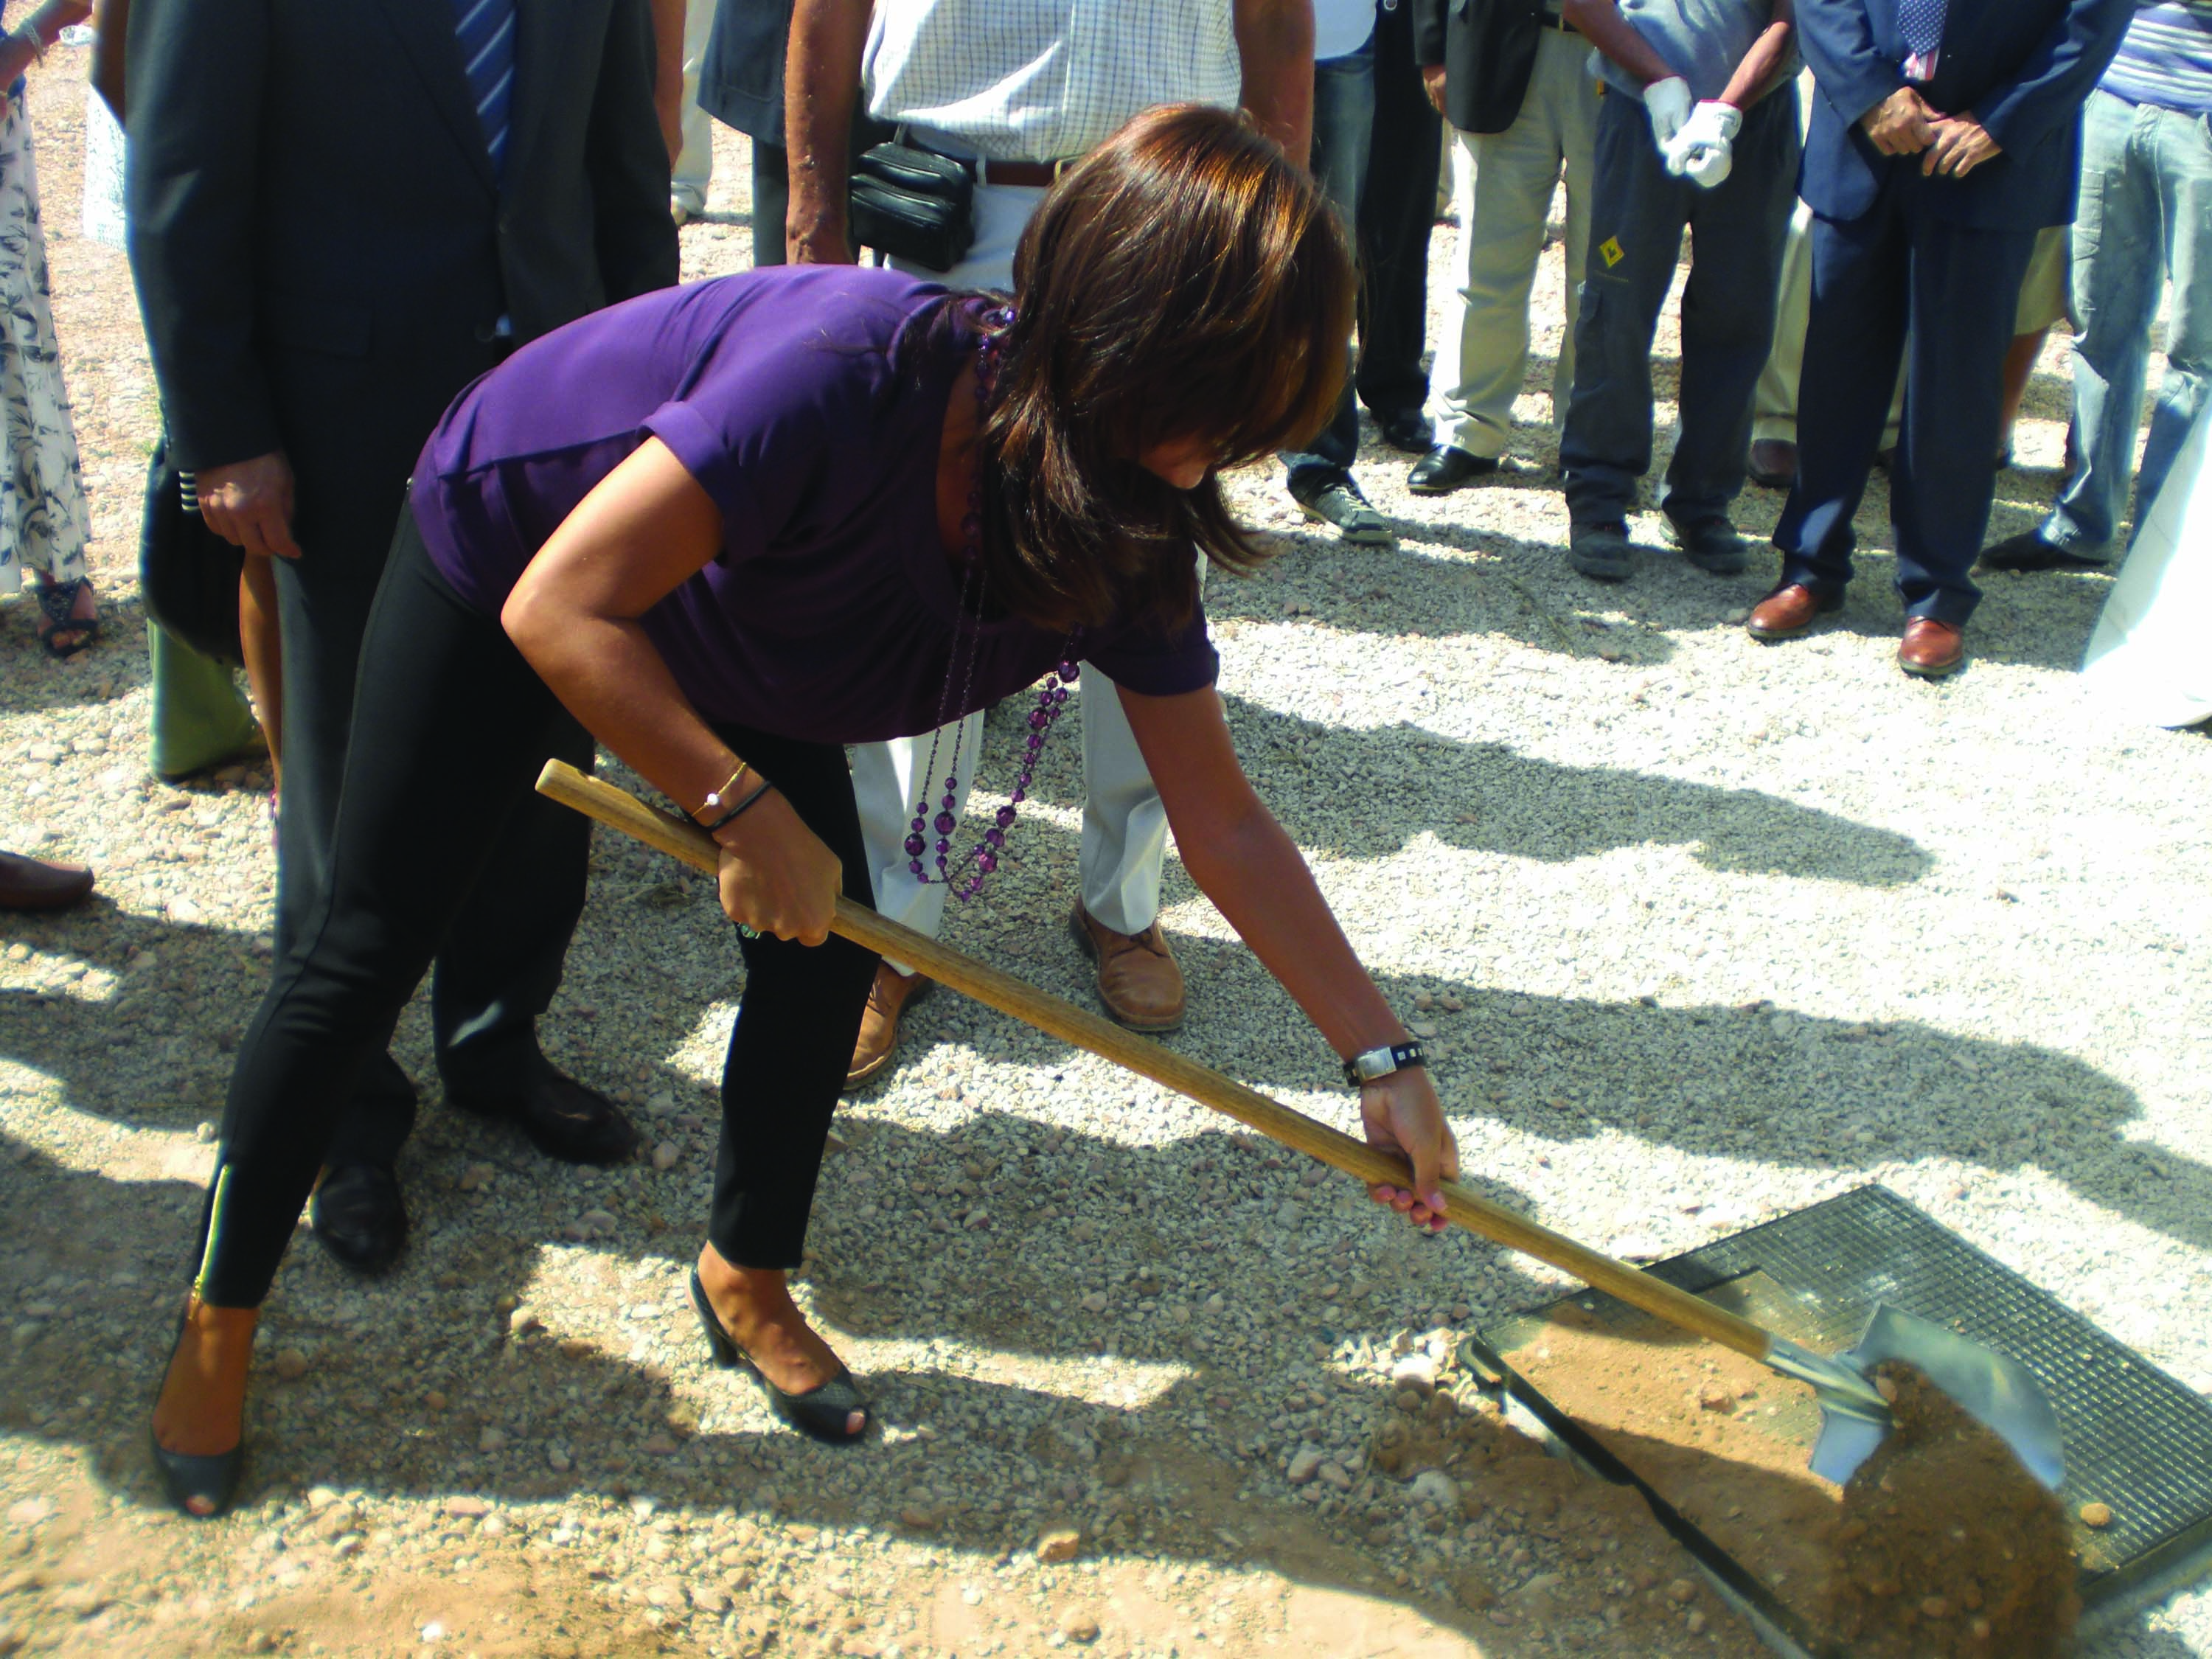 The Mayor Monica LOrente covering the time capsule in 2010